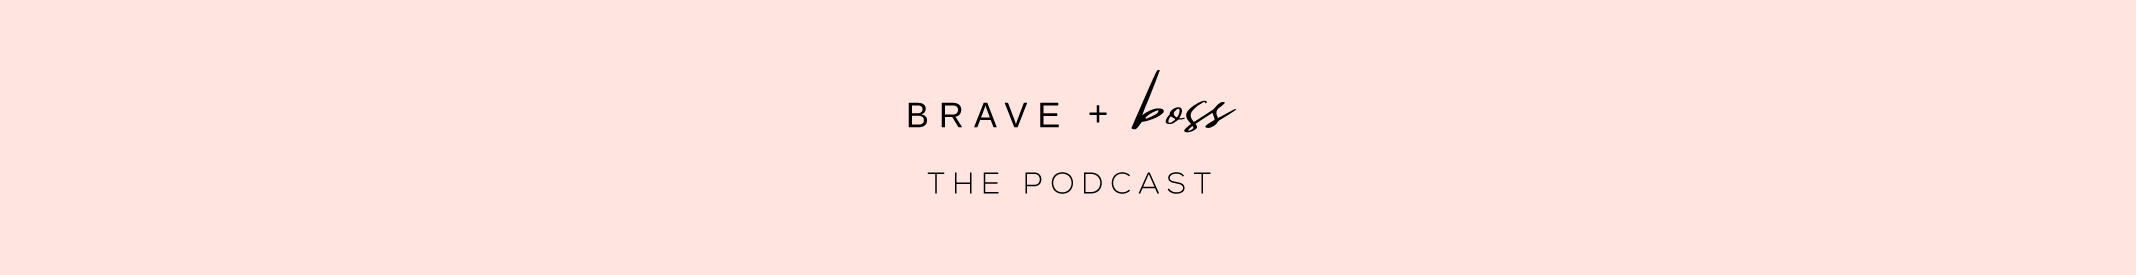 about brave and boss the podcast